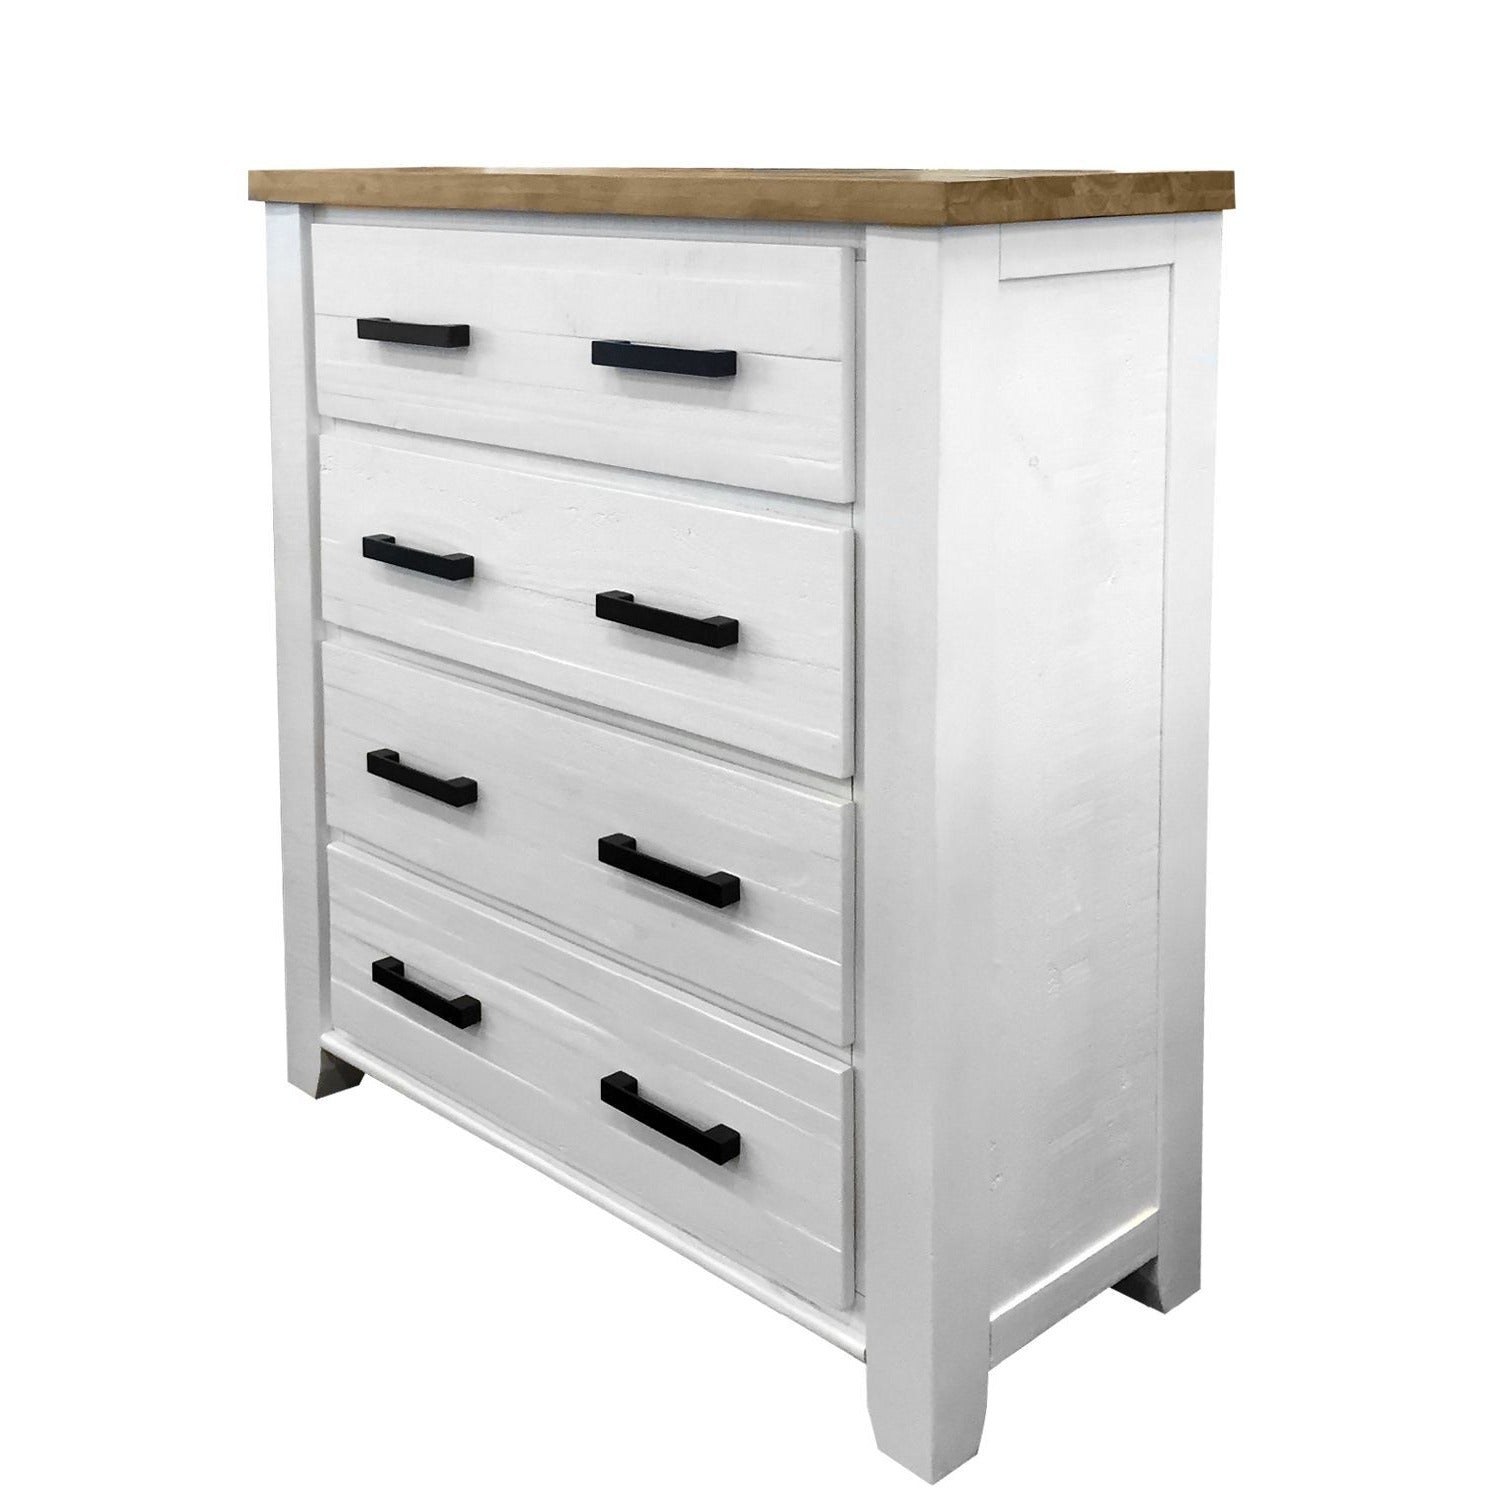 Harlow Tallboy - 4 Drawer